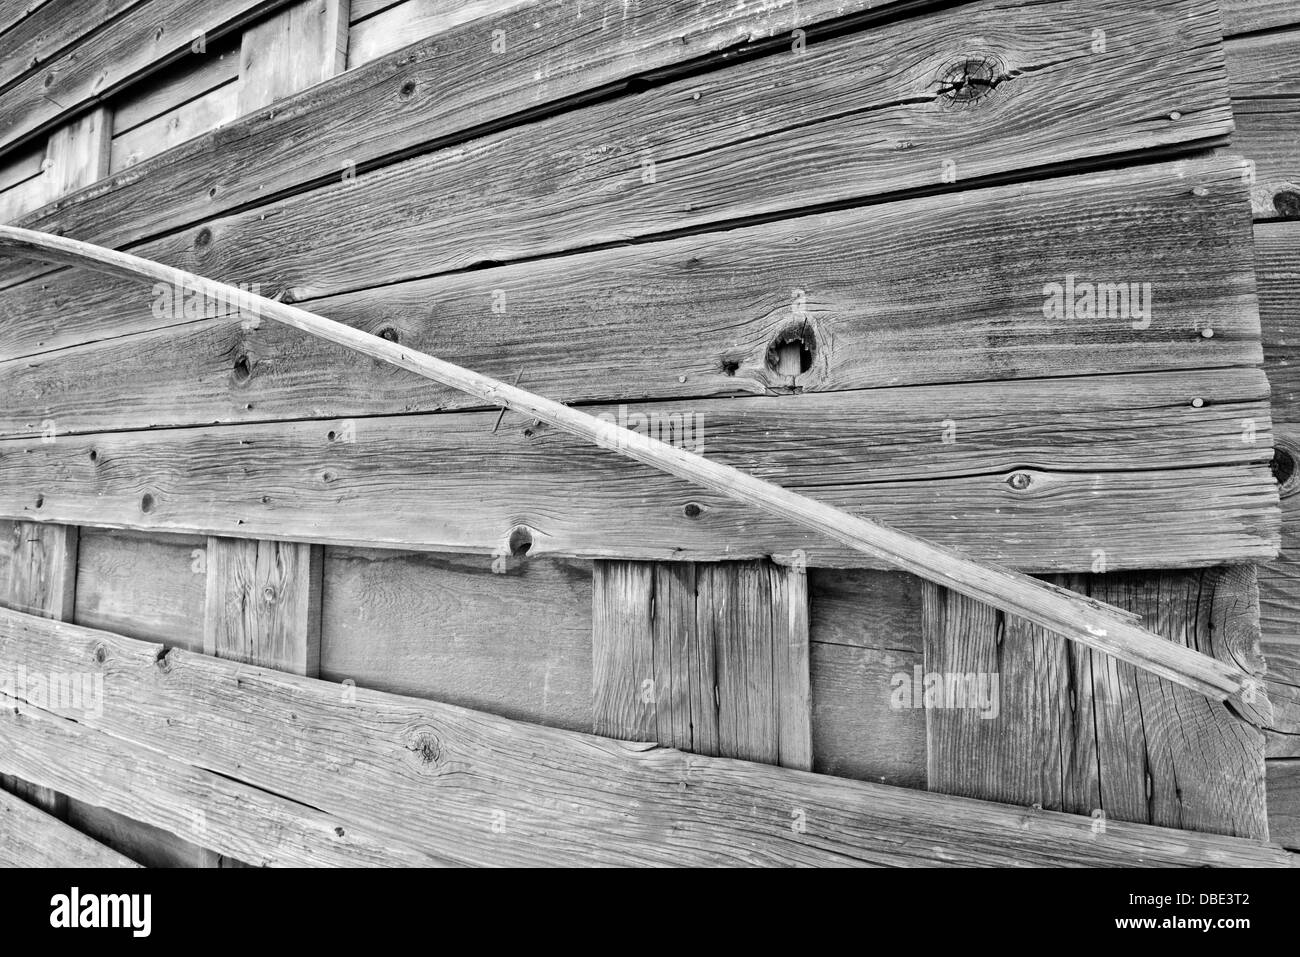 Wood plank peeling of a the exterior wall of an abandoned building on Oregon's Zumwalt Prairie. - Stock Image